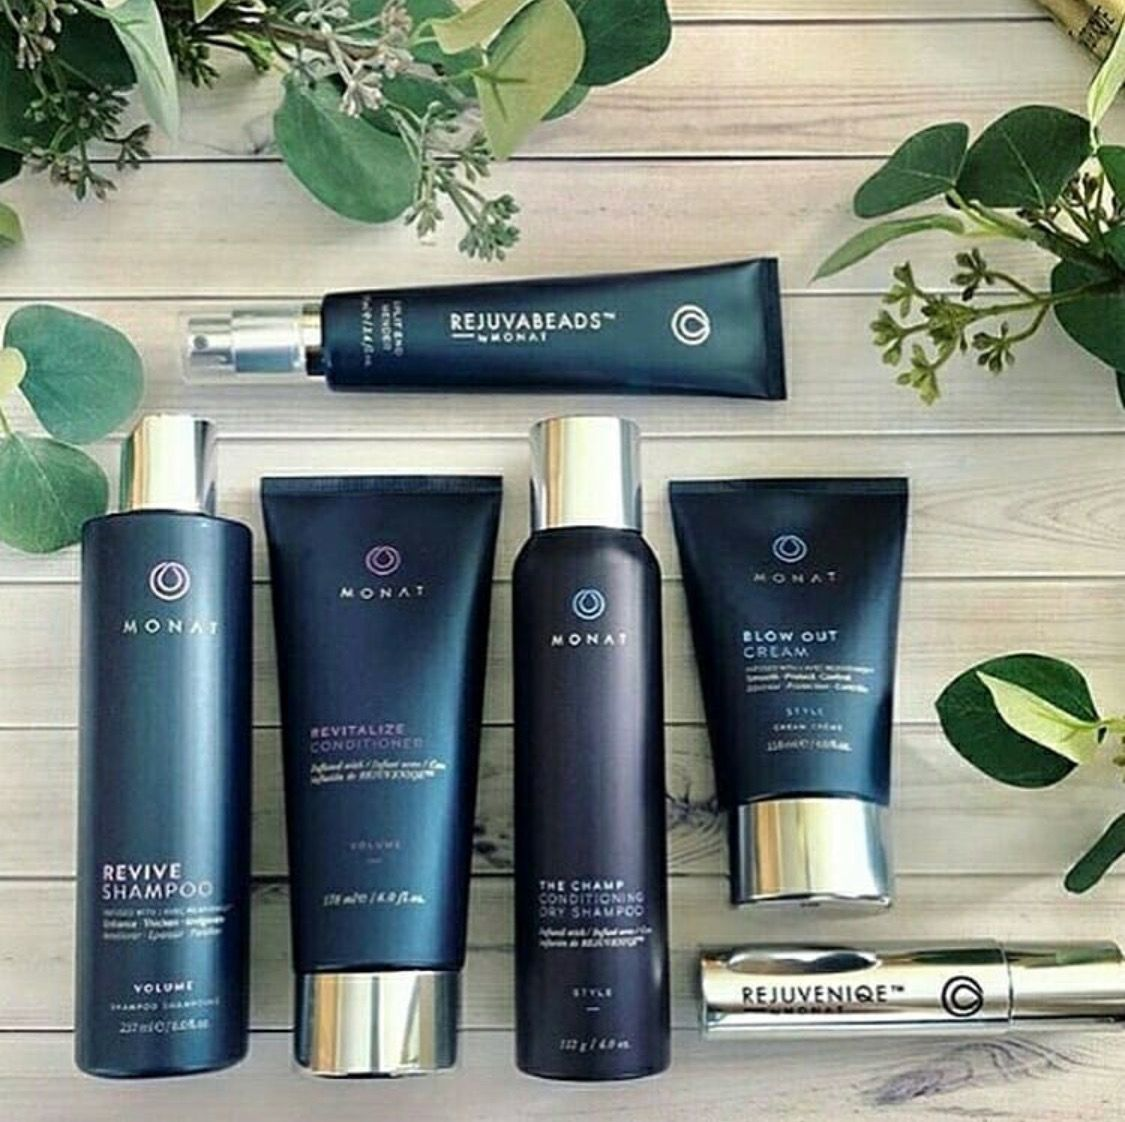 Monat Products! (With images) Monat hair, Monat, Hair care